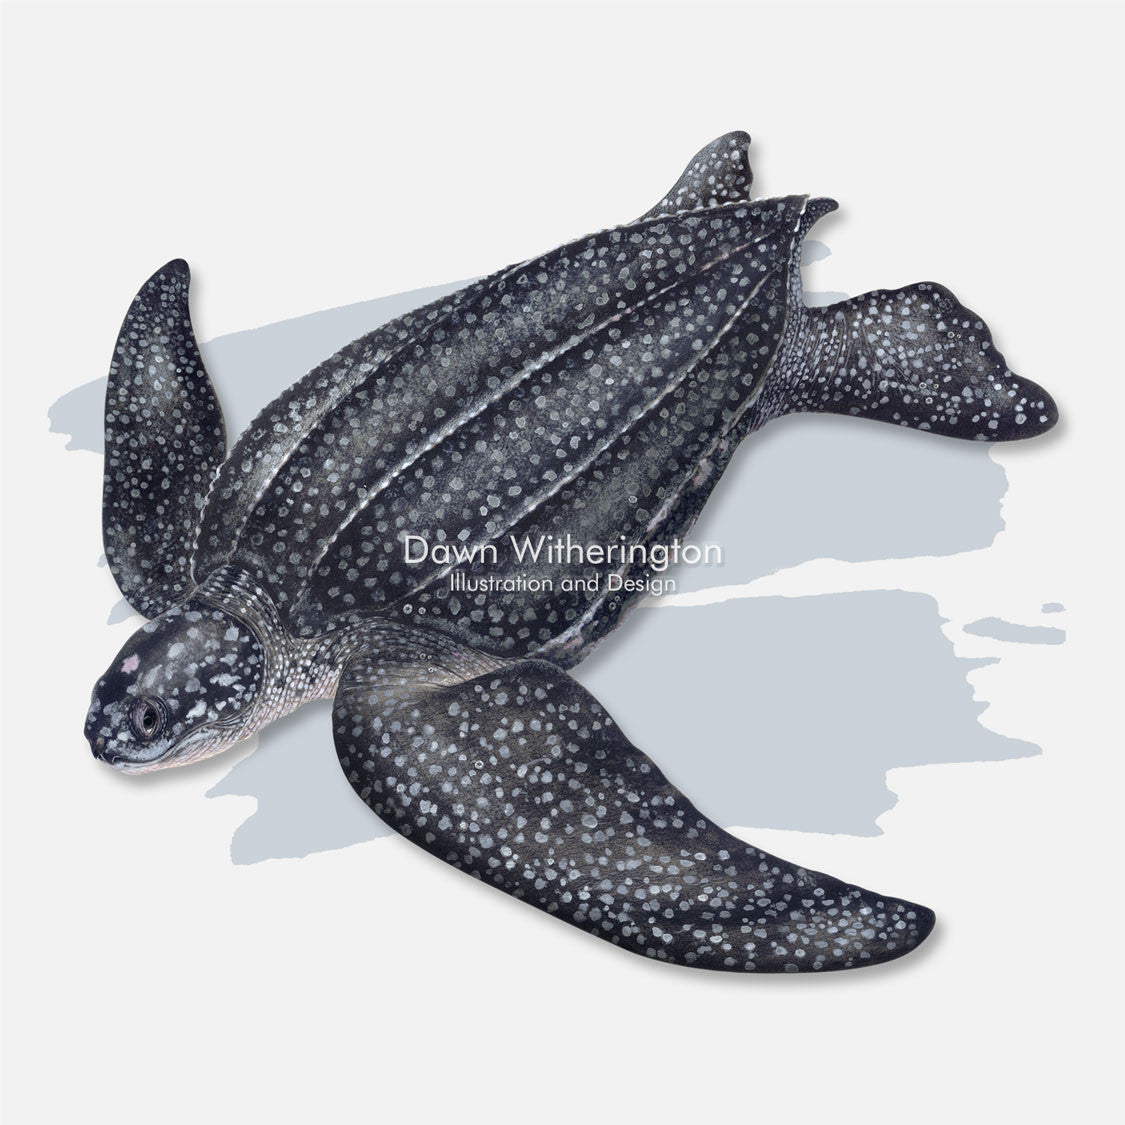 This beautiful illustration is of a leatherback sea turtle, Dermochelys coriacea, with a splash graphic.